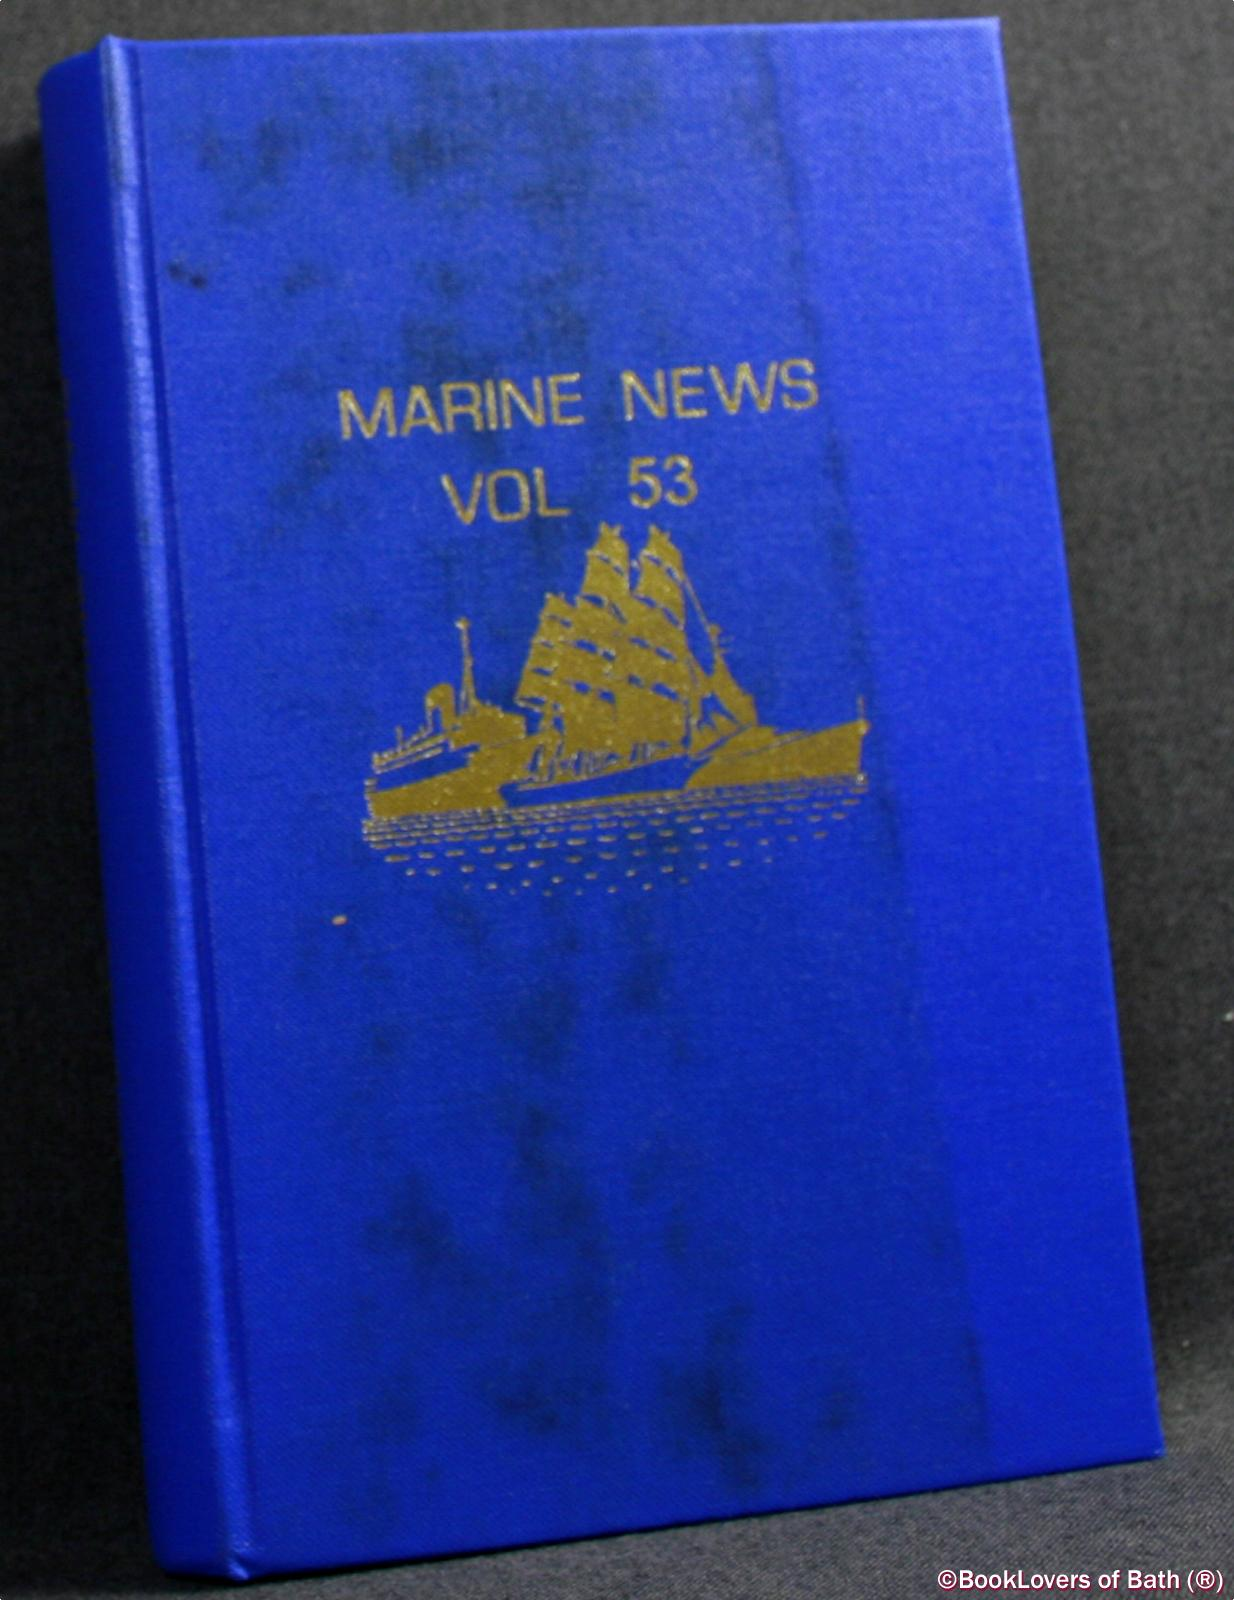 Marine News: Journal of the World Ship Society Volume 53 No. 1 to No. 12 - Anon.